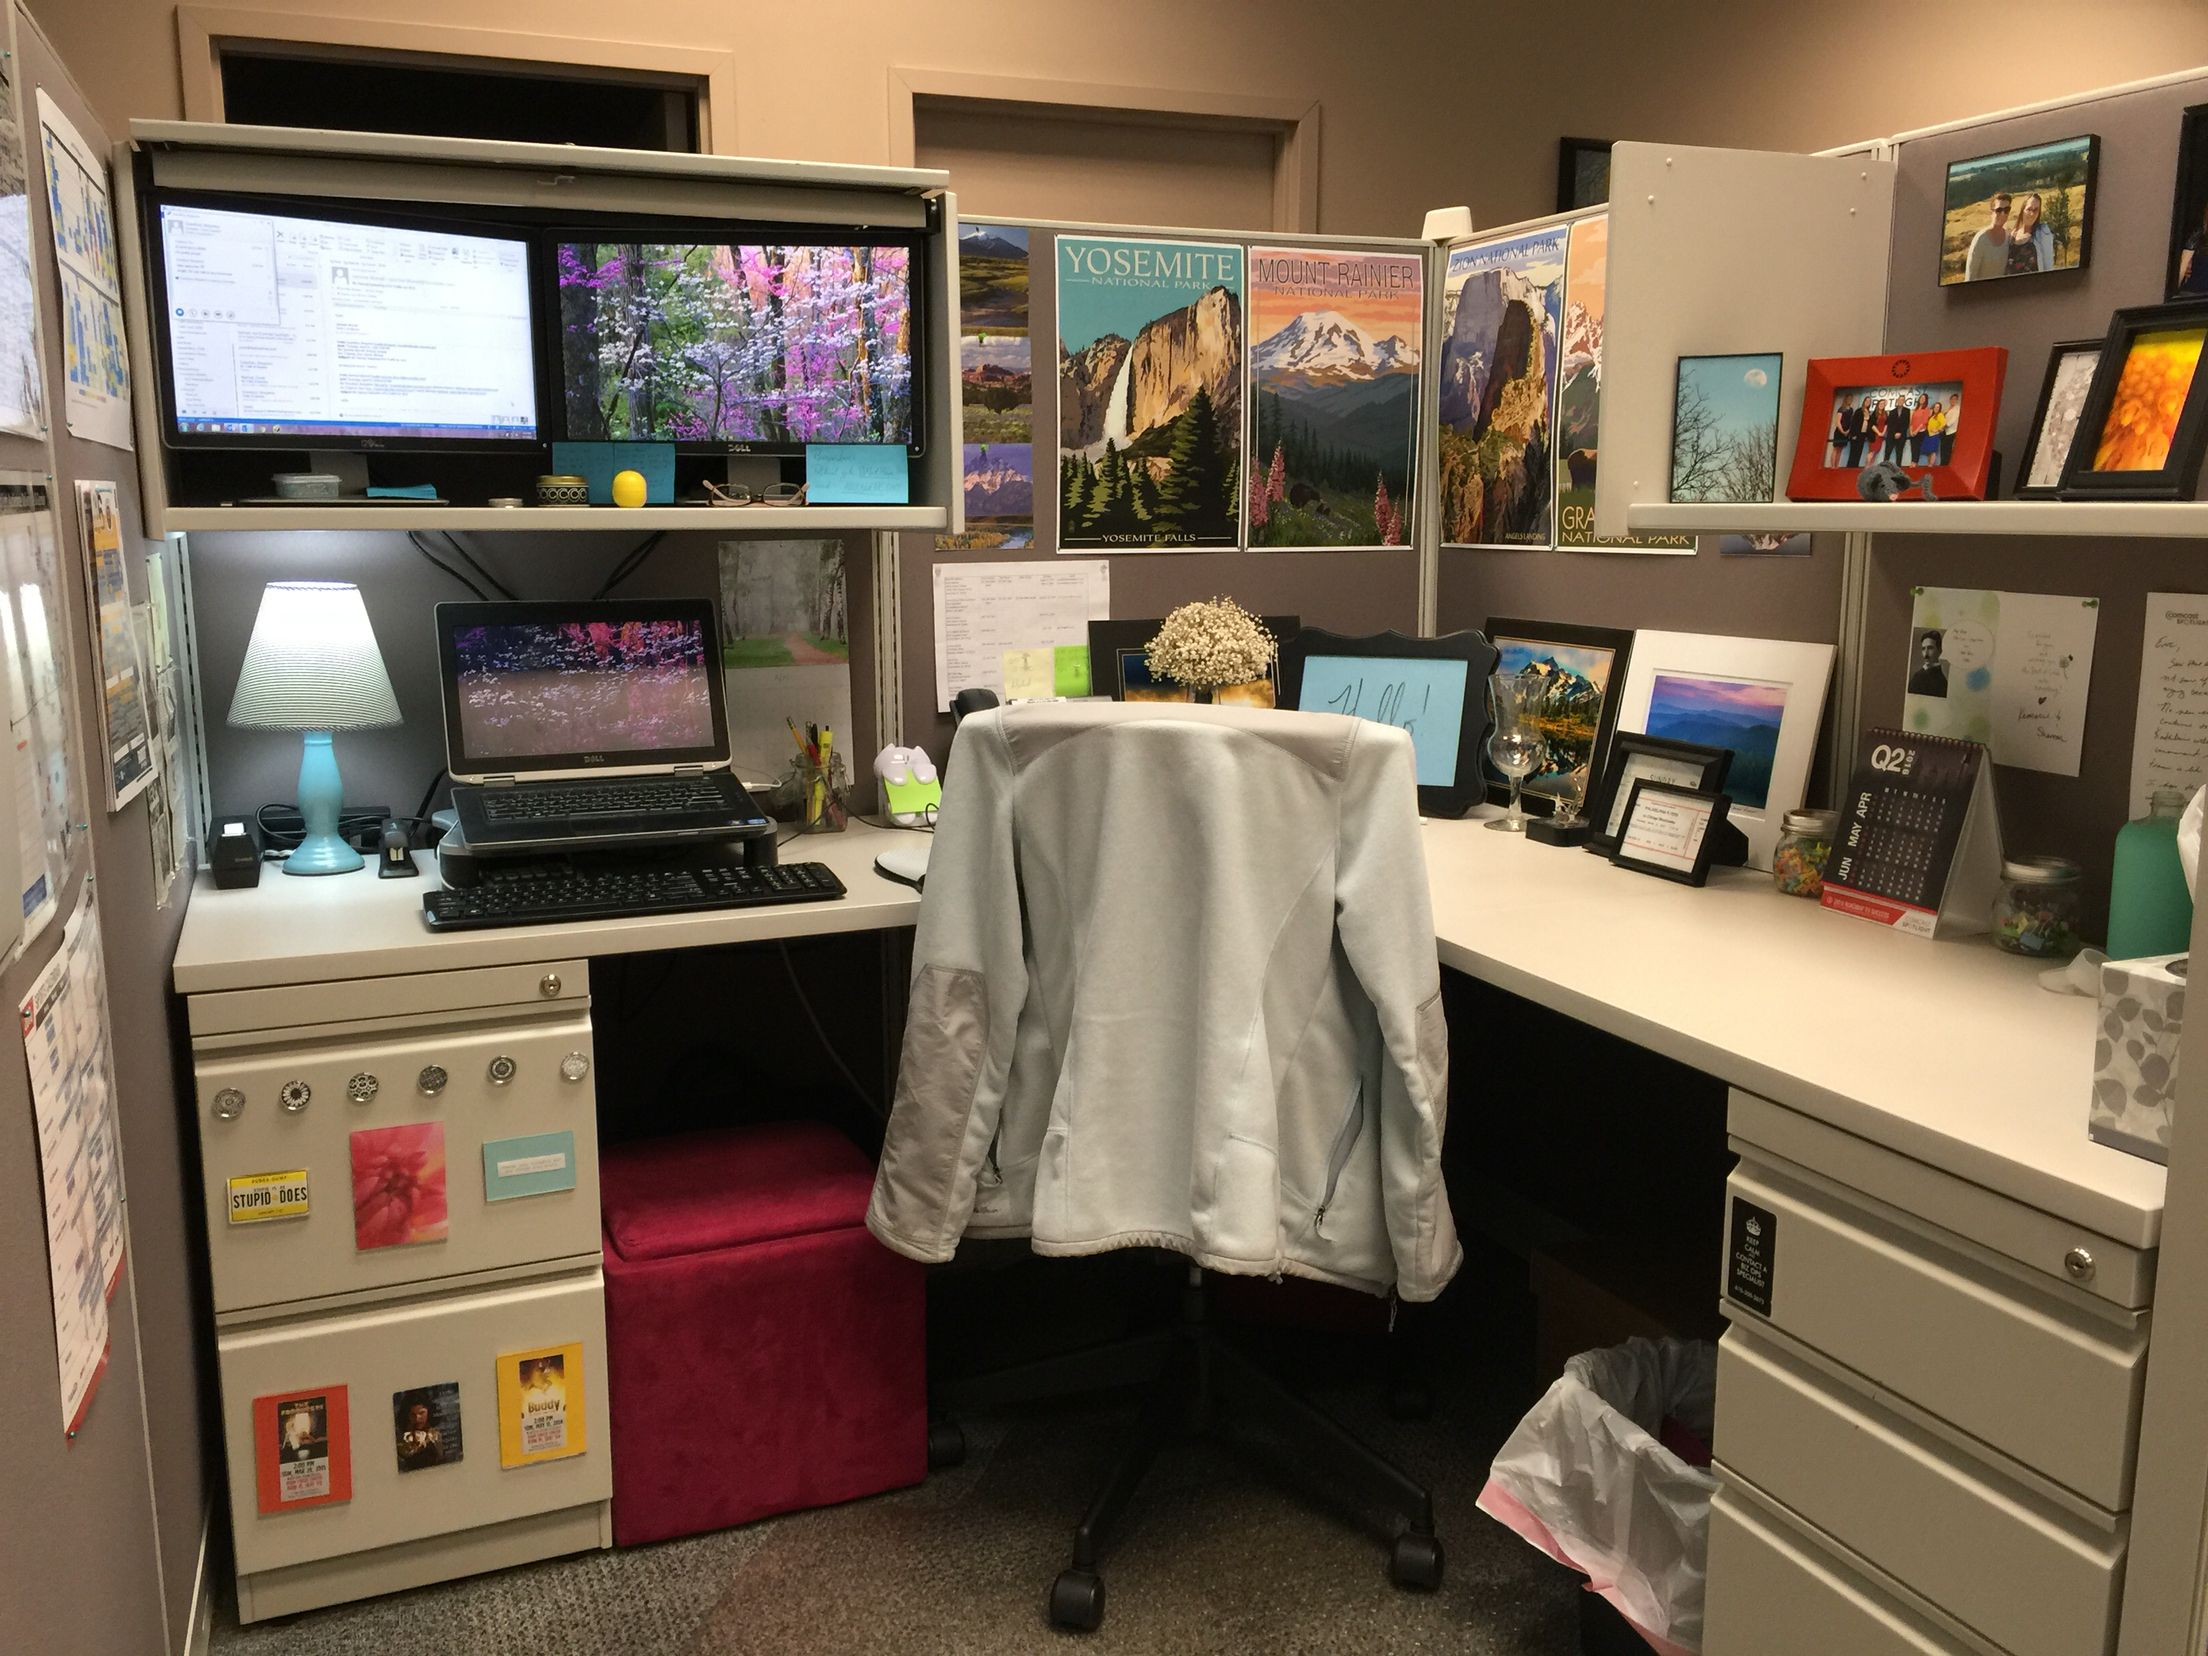 Cubicle Décor Ideas To Make Your Home Office Pop: Used The Overhead Storage In My Cube To Create My Own